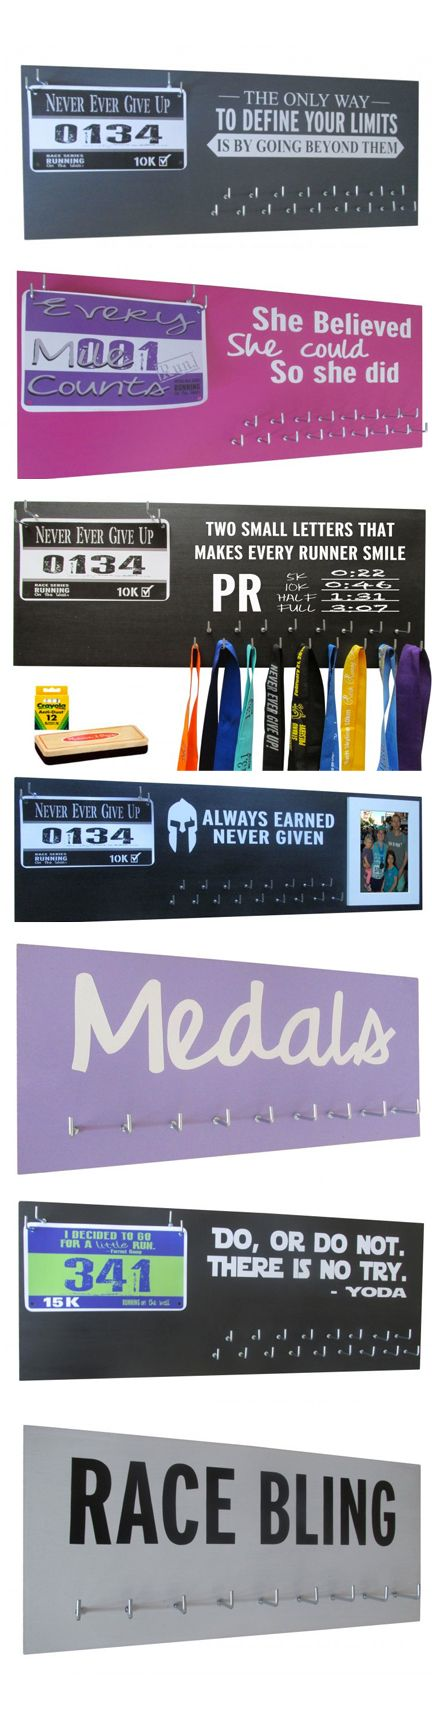 gifts-for-runners-pin-ad